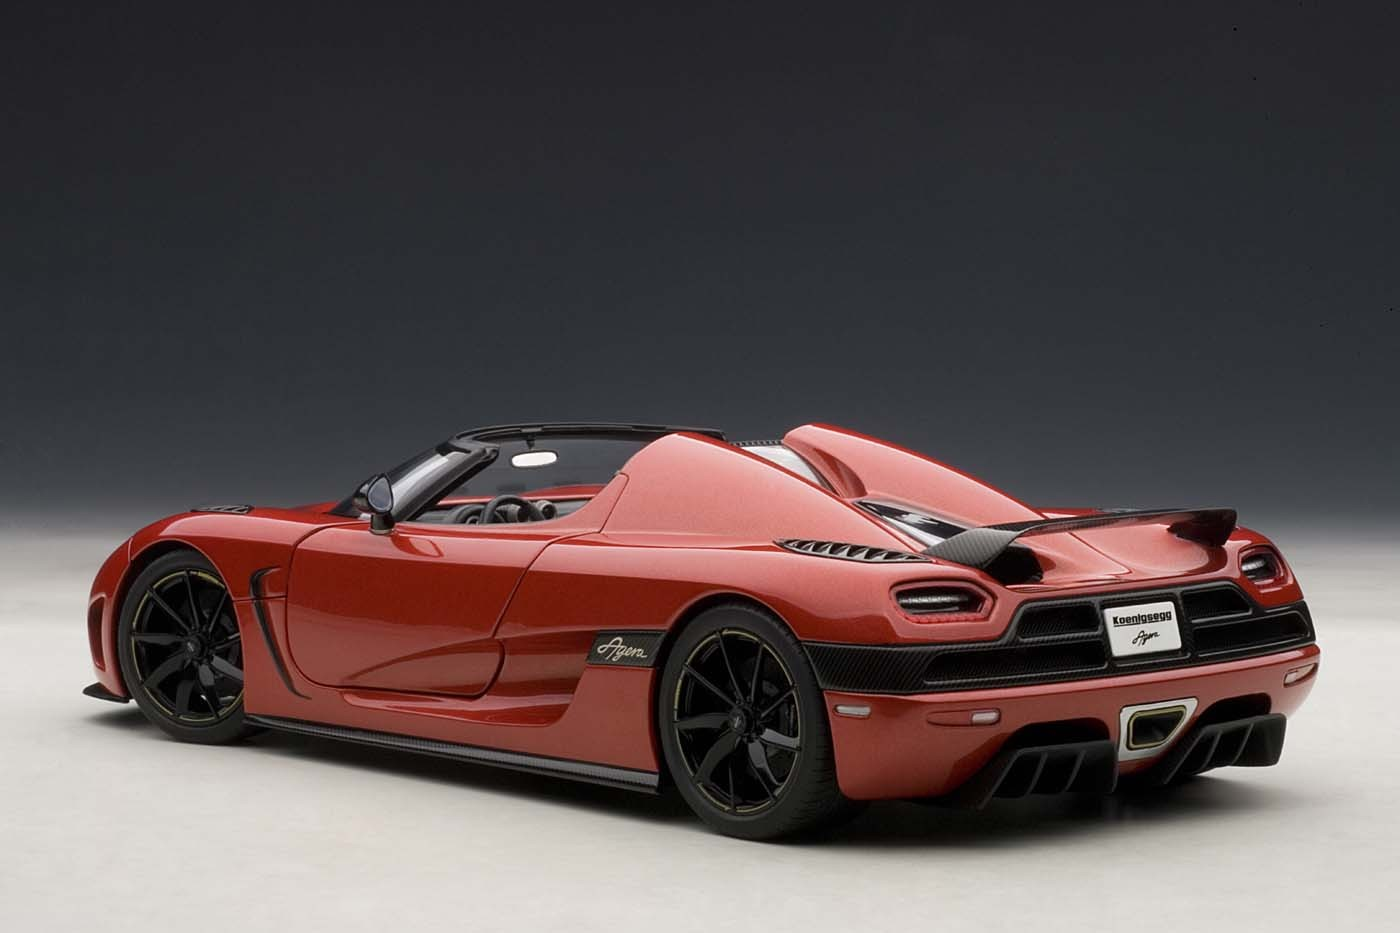 Toy Models Product : Highly detailed autoart scale model koenigsegg agera red